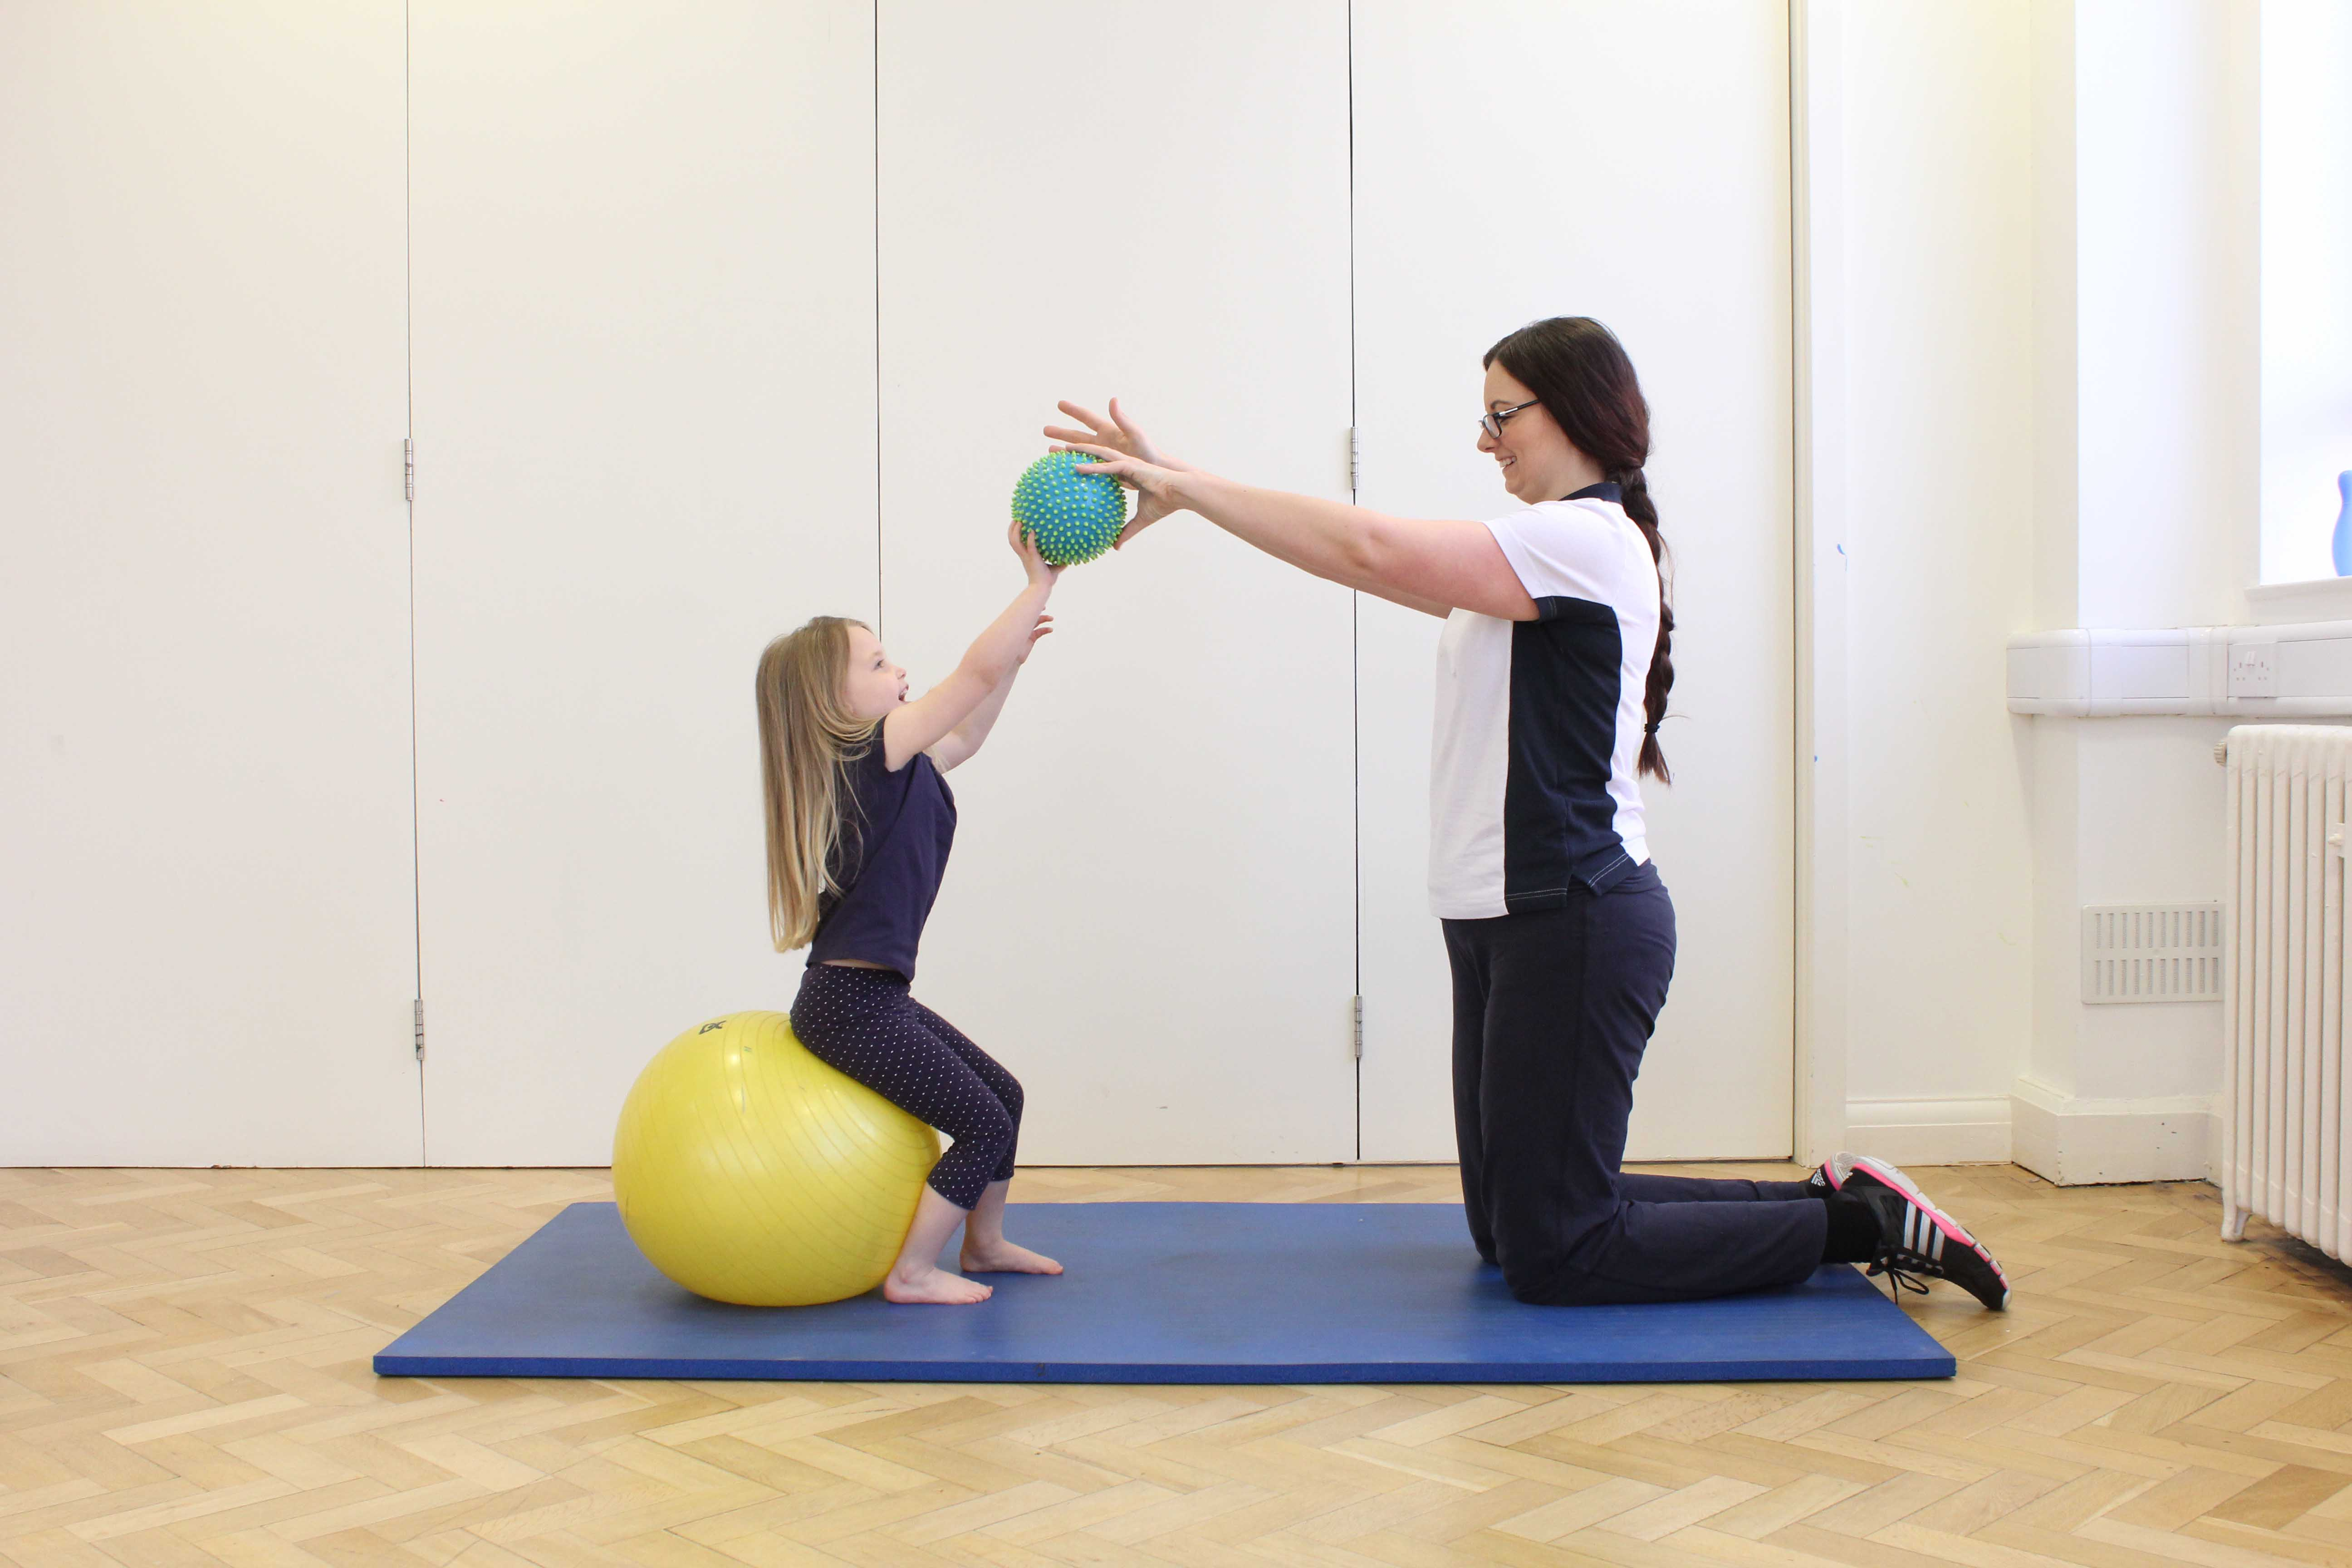 Core stability and strengthening exercises assisted by a paediatric physiotherapist